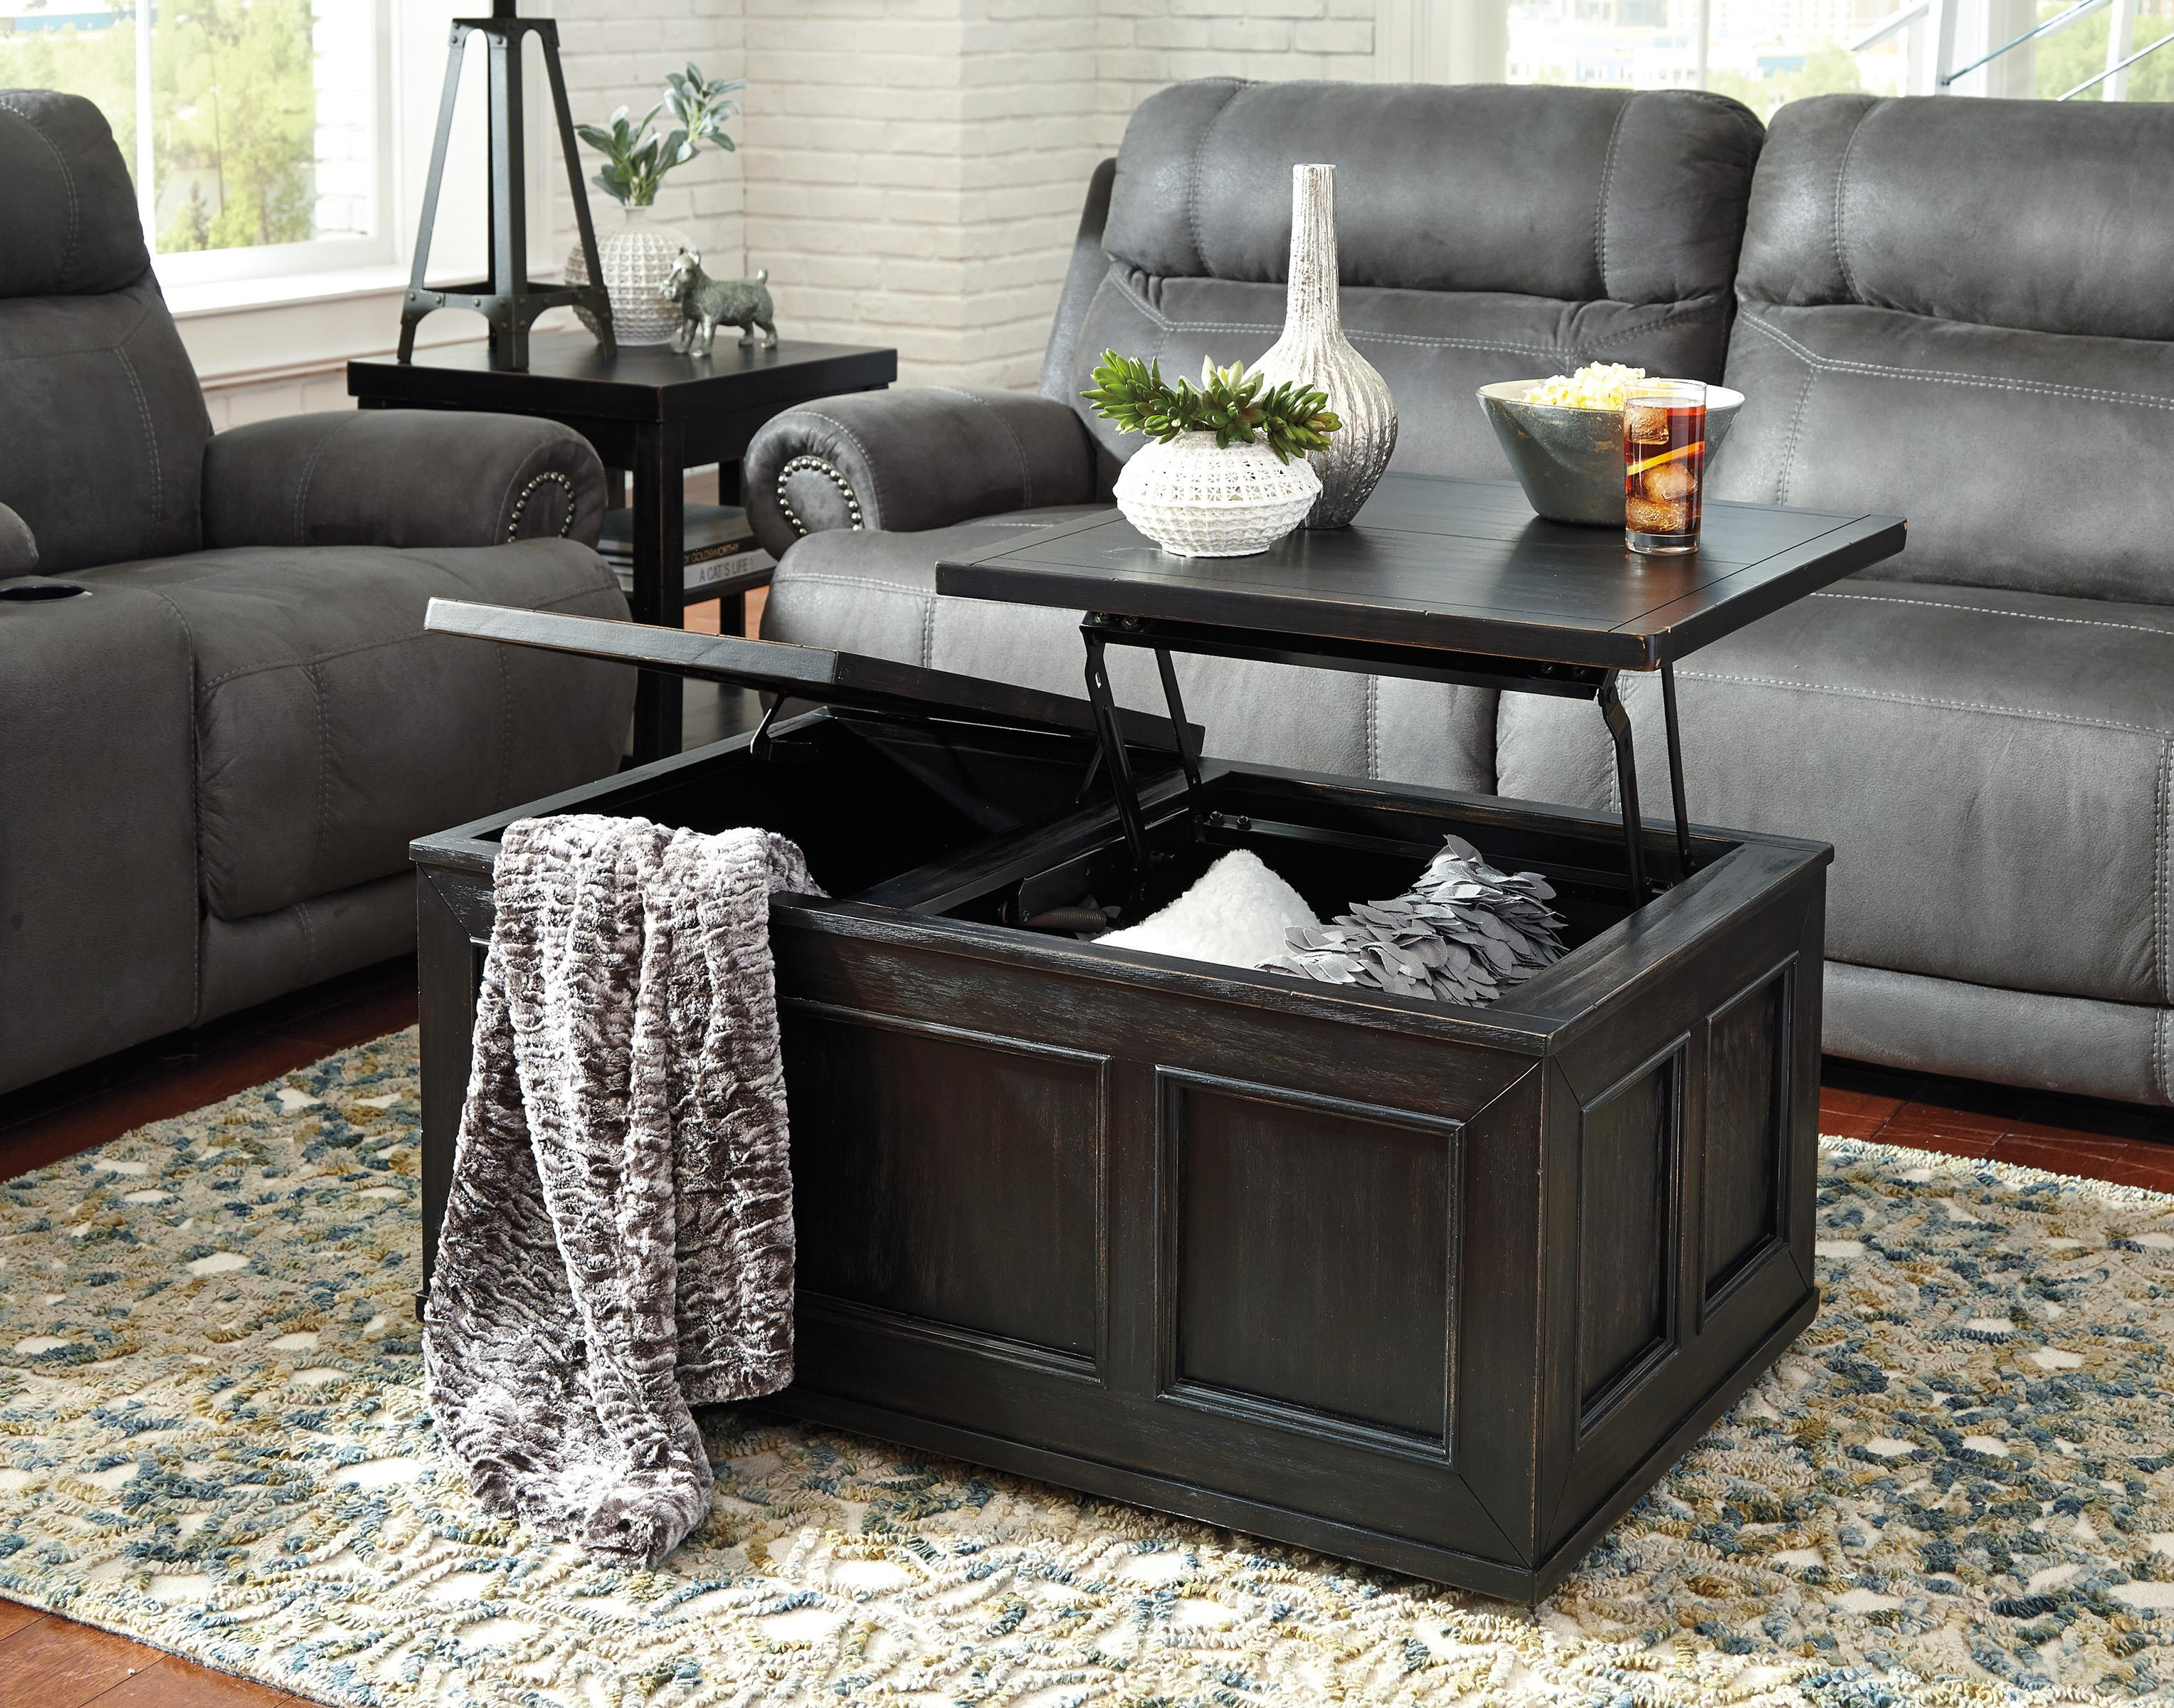 Signature design by ashley gavelston rustic distressed black trunk style lift top cocktail table Black lift top coffee tables